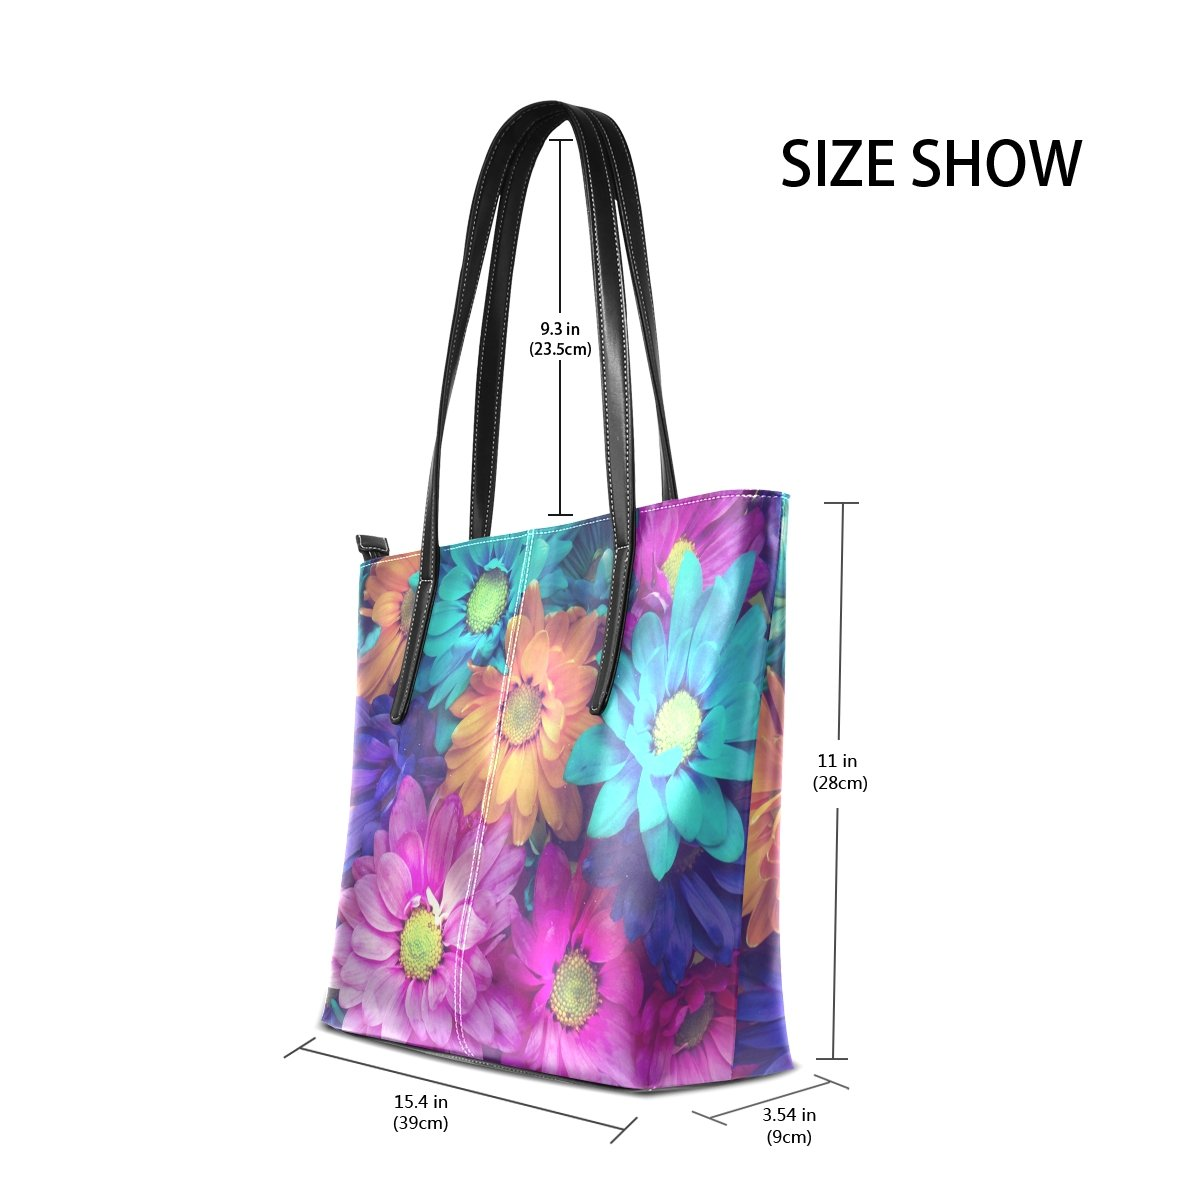 Sunlome Classic Pink Floral Flower Handbags For Women Girls PU Leather Shoulder Tote Bag